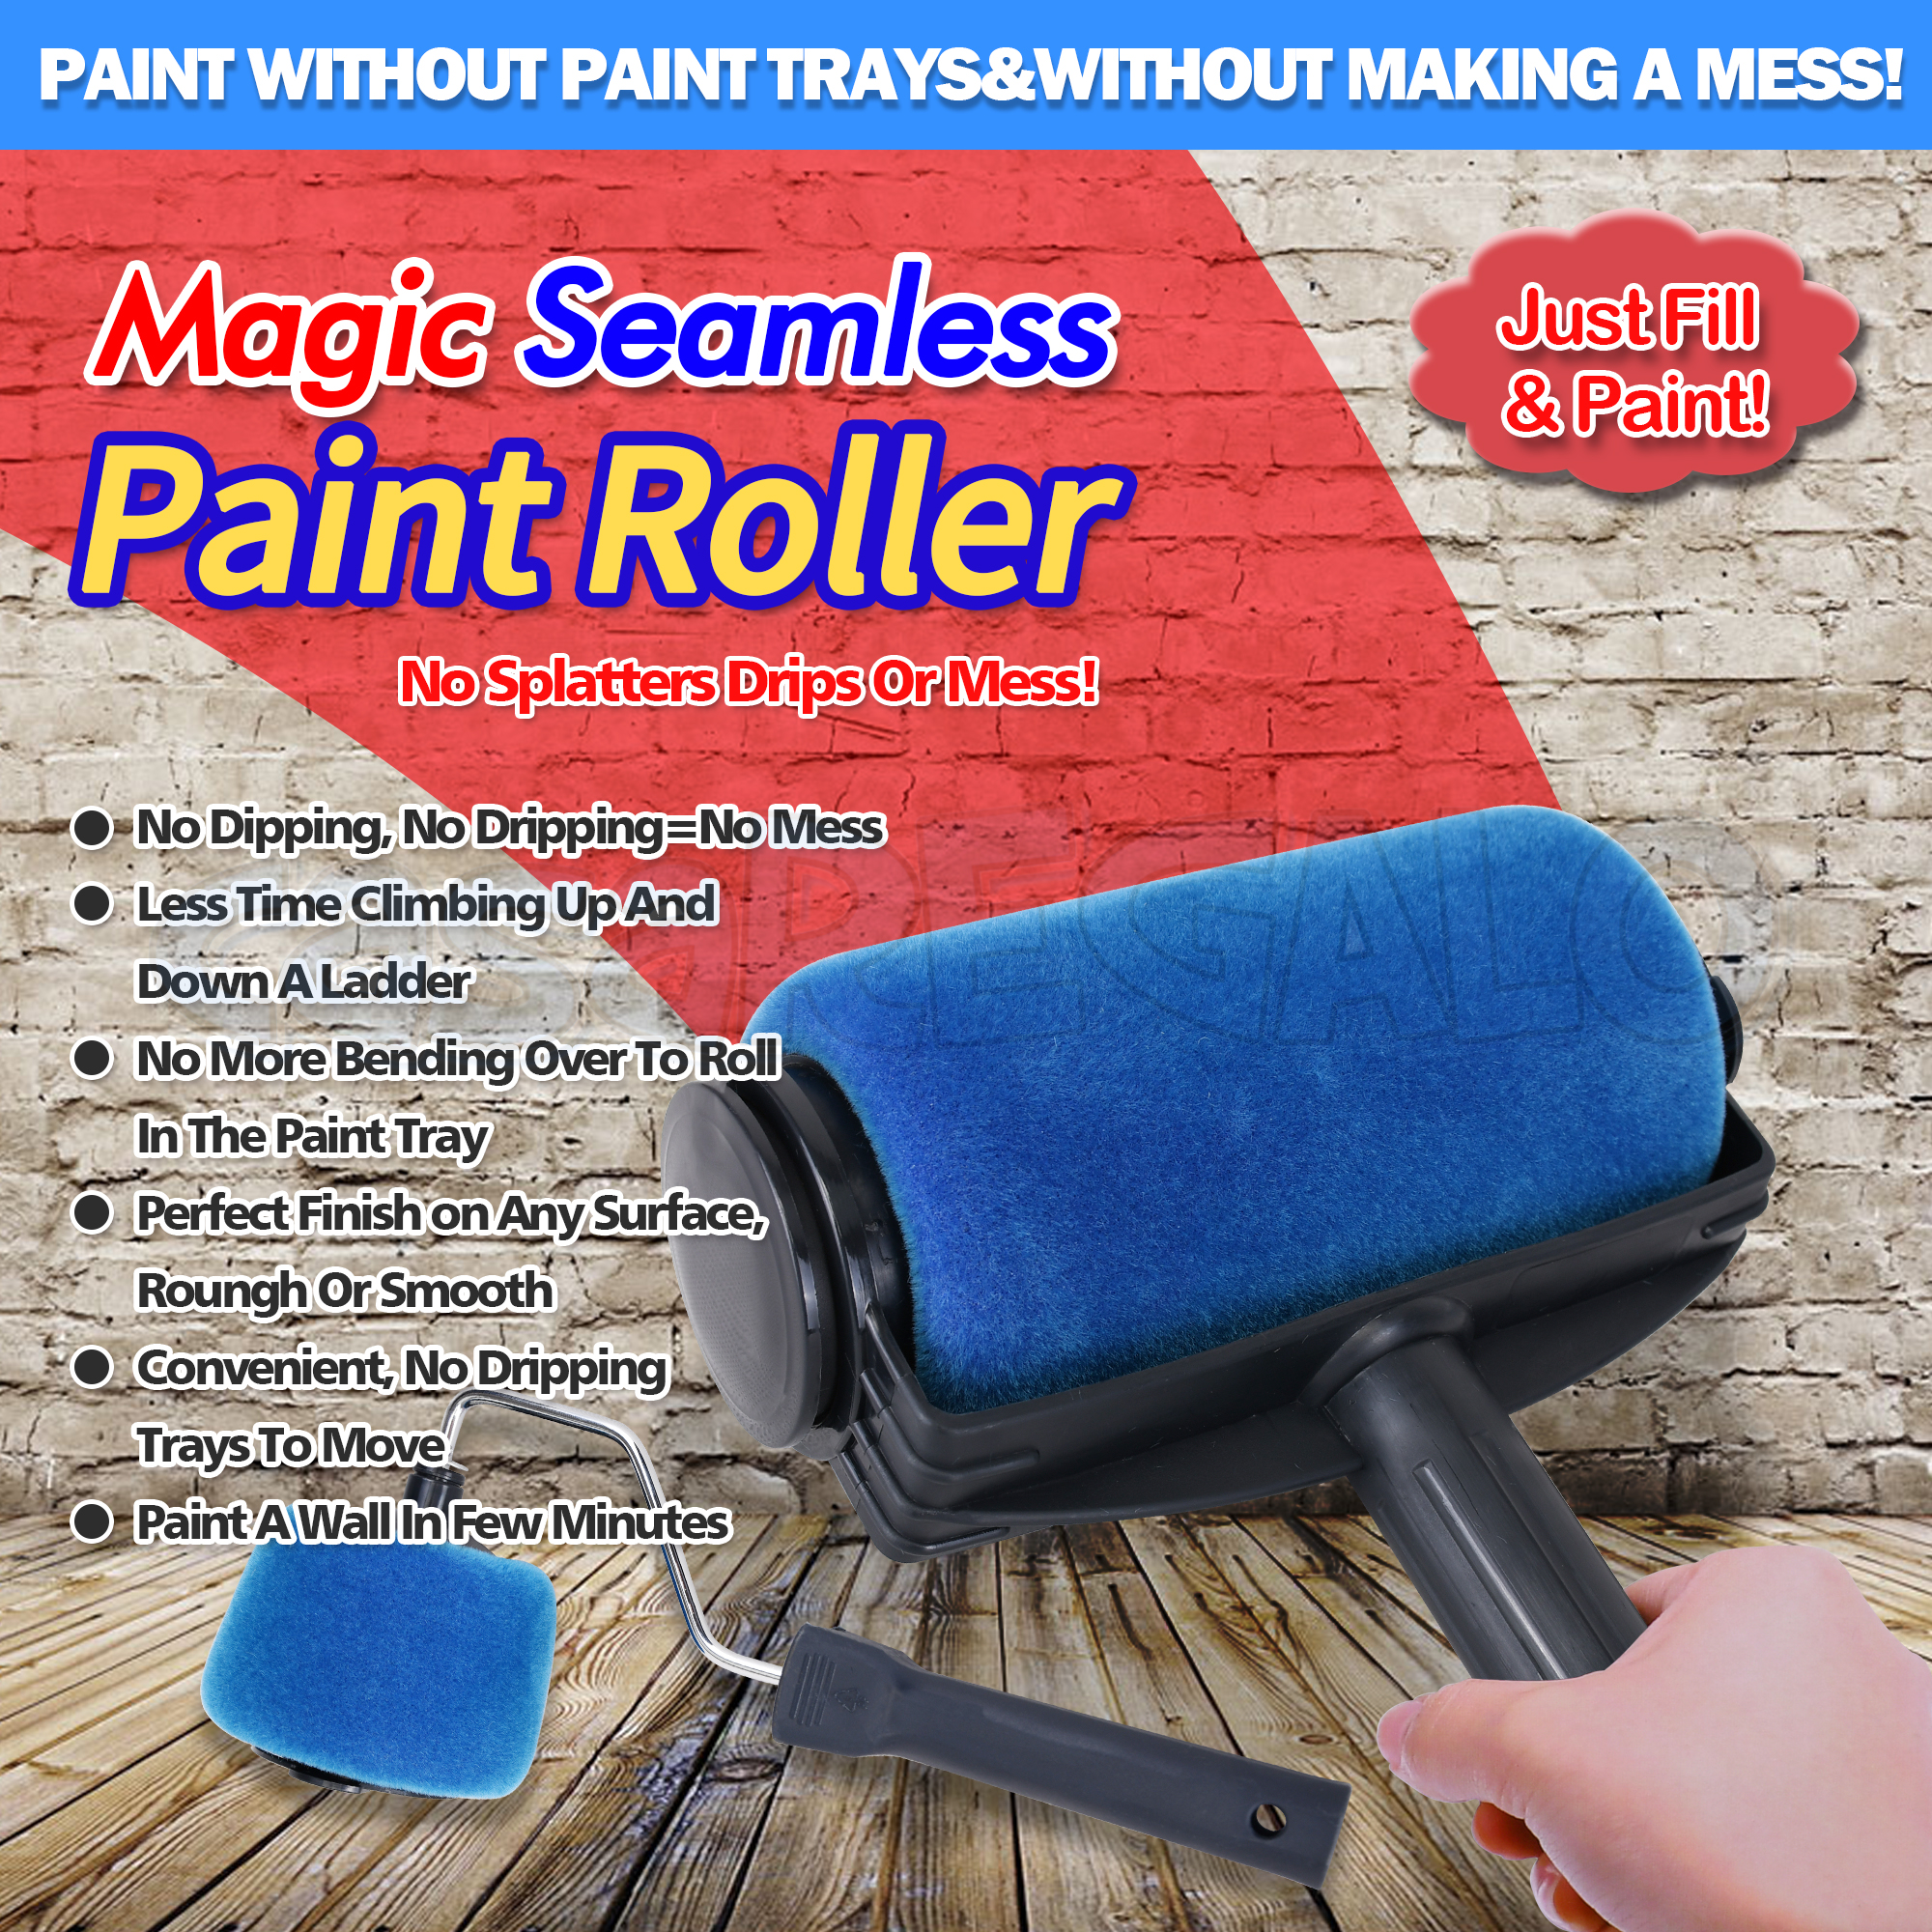 paint roller kit painting roller runner pintar facil decor pro as seen on tv 9318112801325 ebay. Black Bedroom Furniture Sets. Home Design Ideas